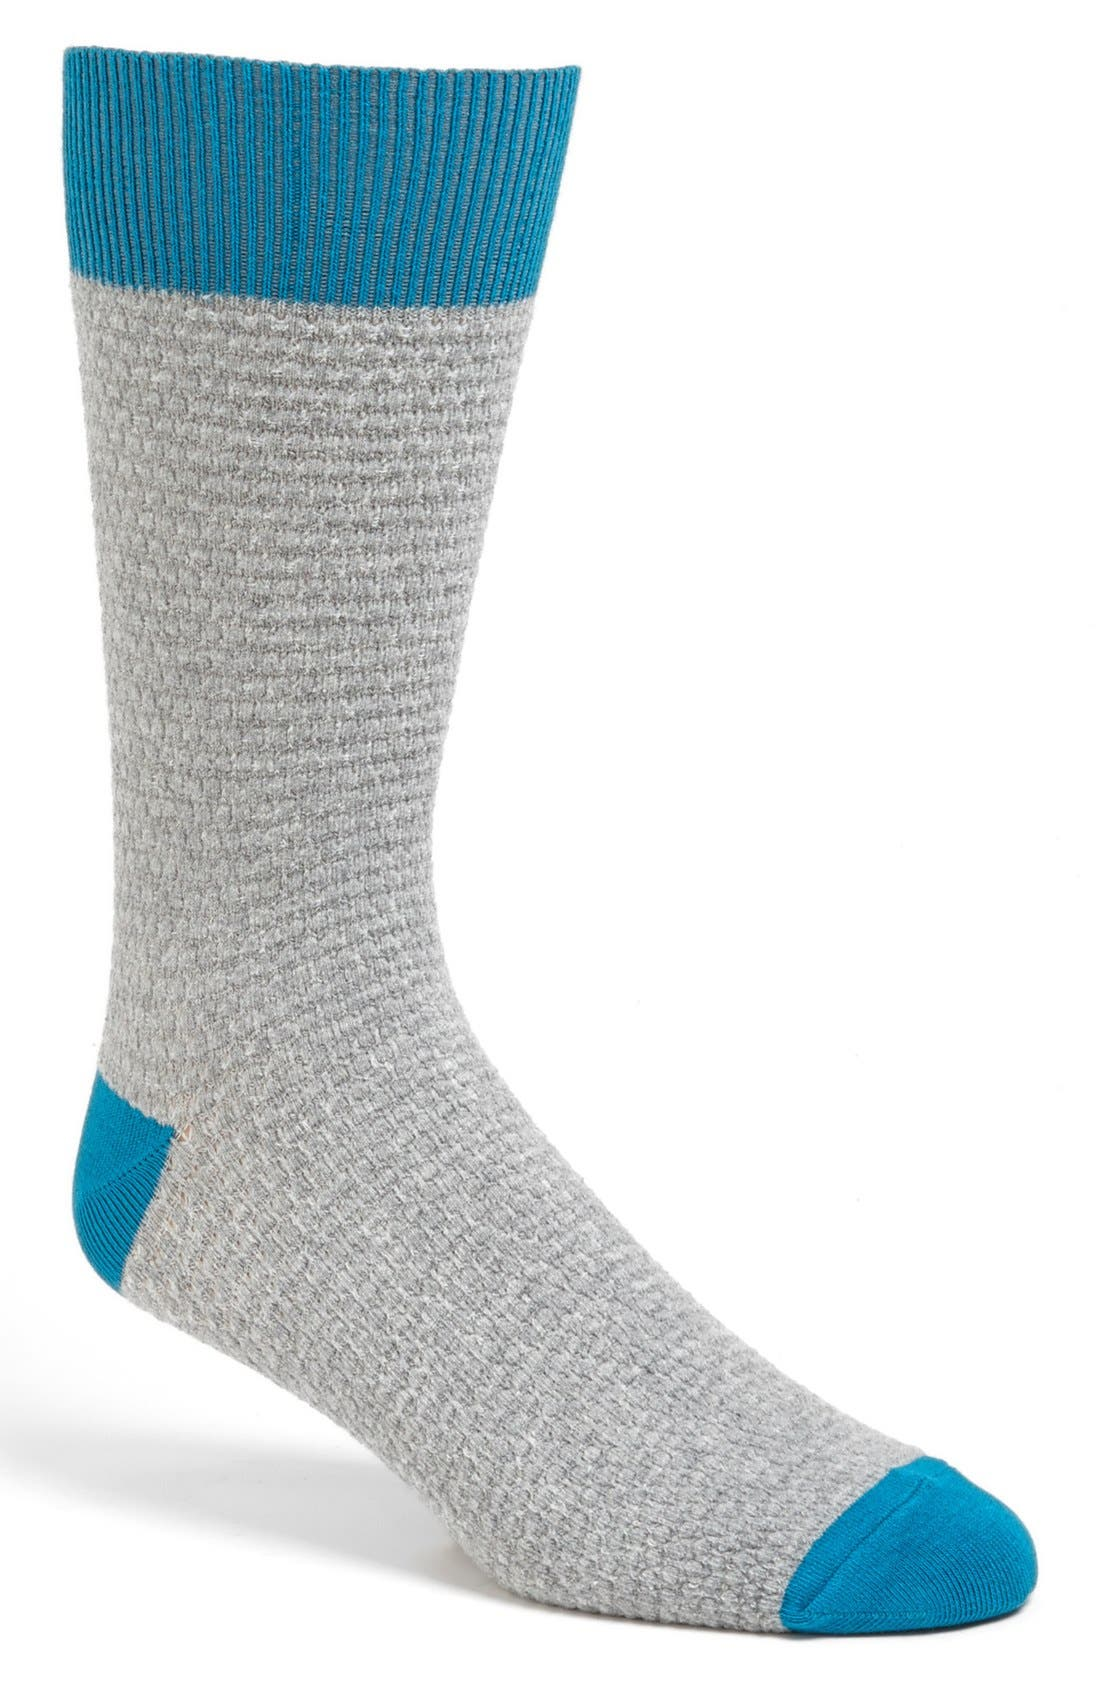 Alternate Image 1 Selected - PACT Waffle Knit Sock